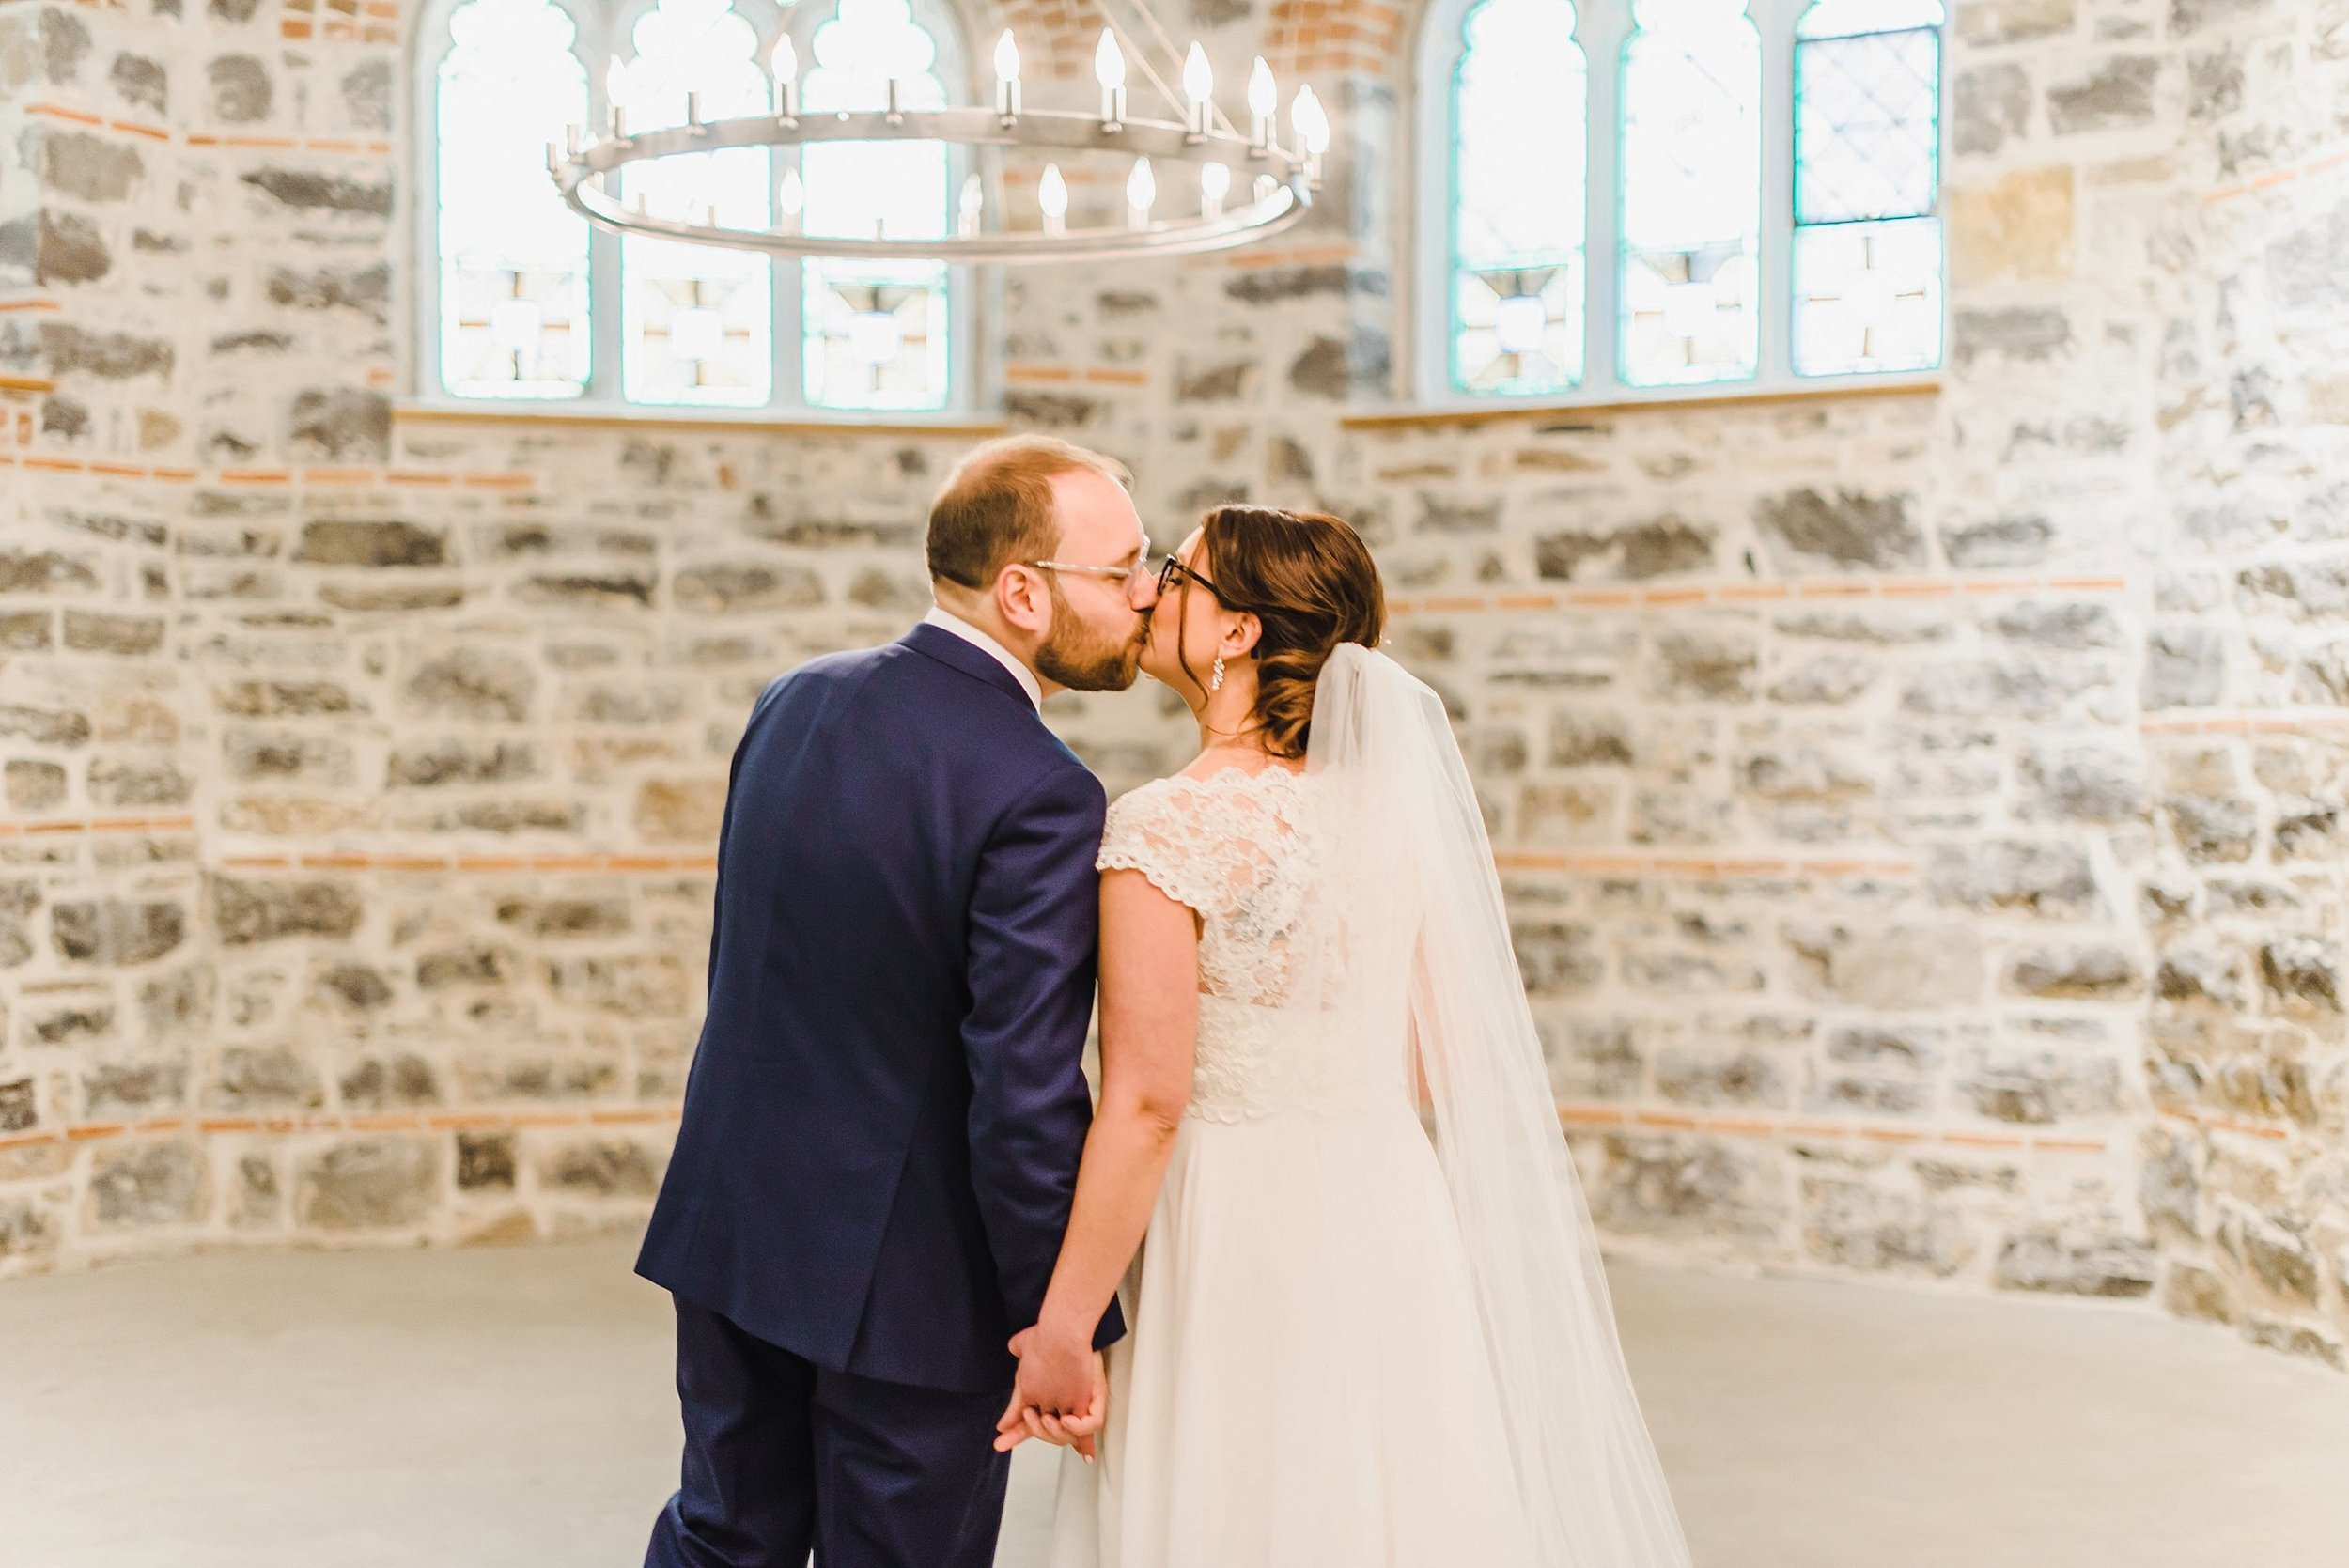 light airy indie fine art ottawa wedding photographer | Ali and Batoul Photography_0051.jpg